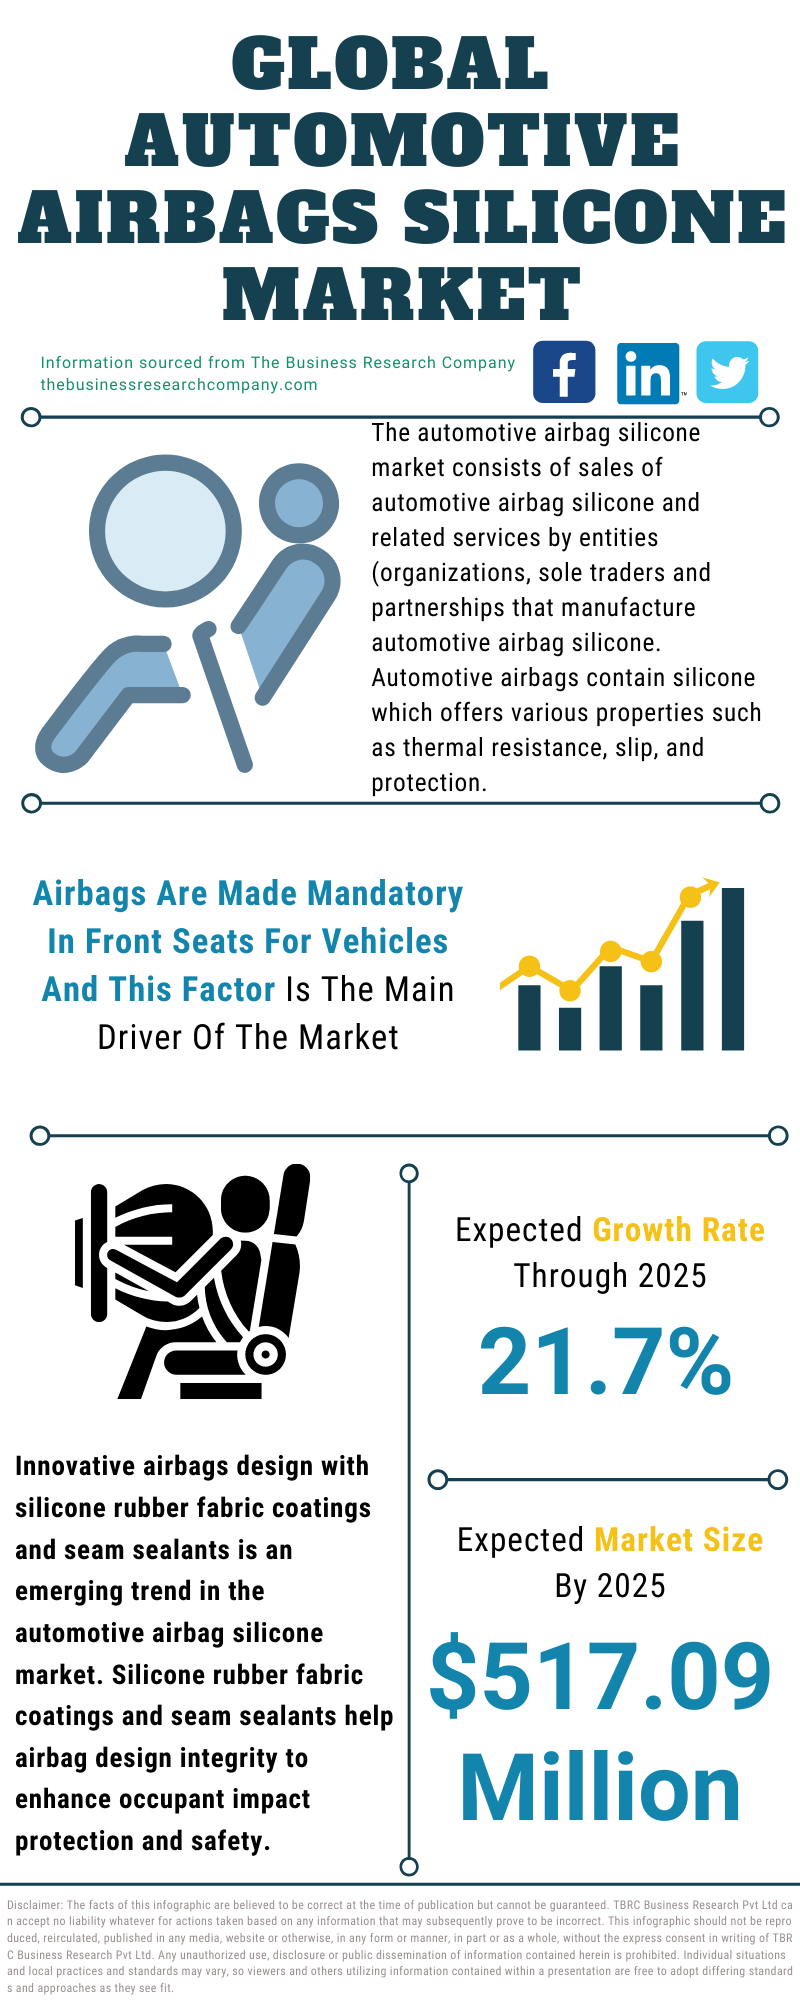 Automotive Airbags Silicone Market